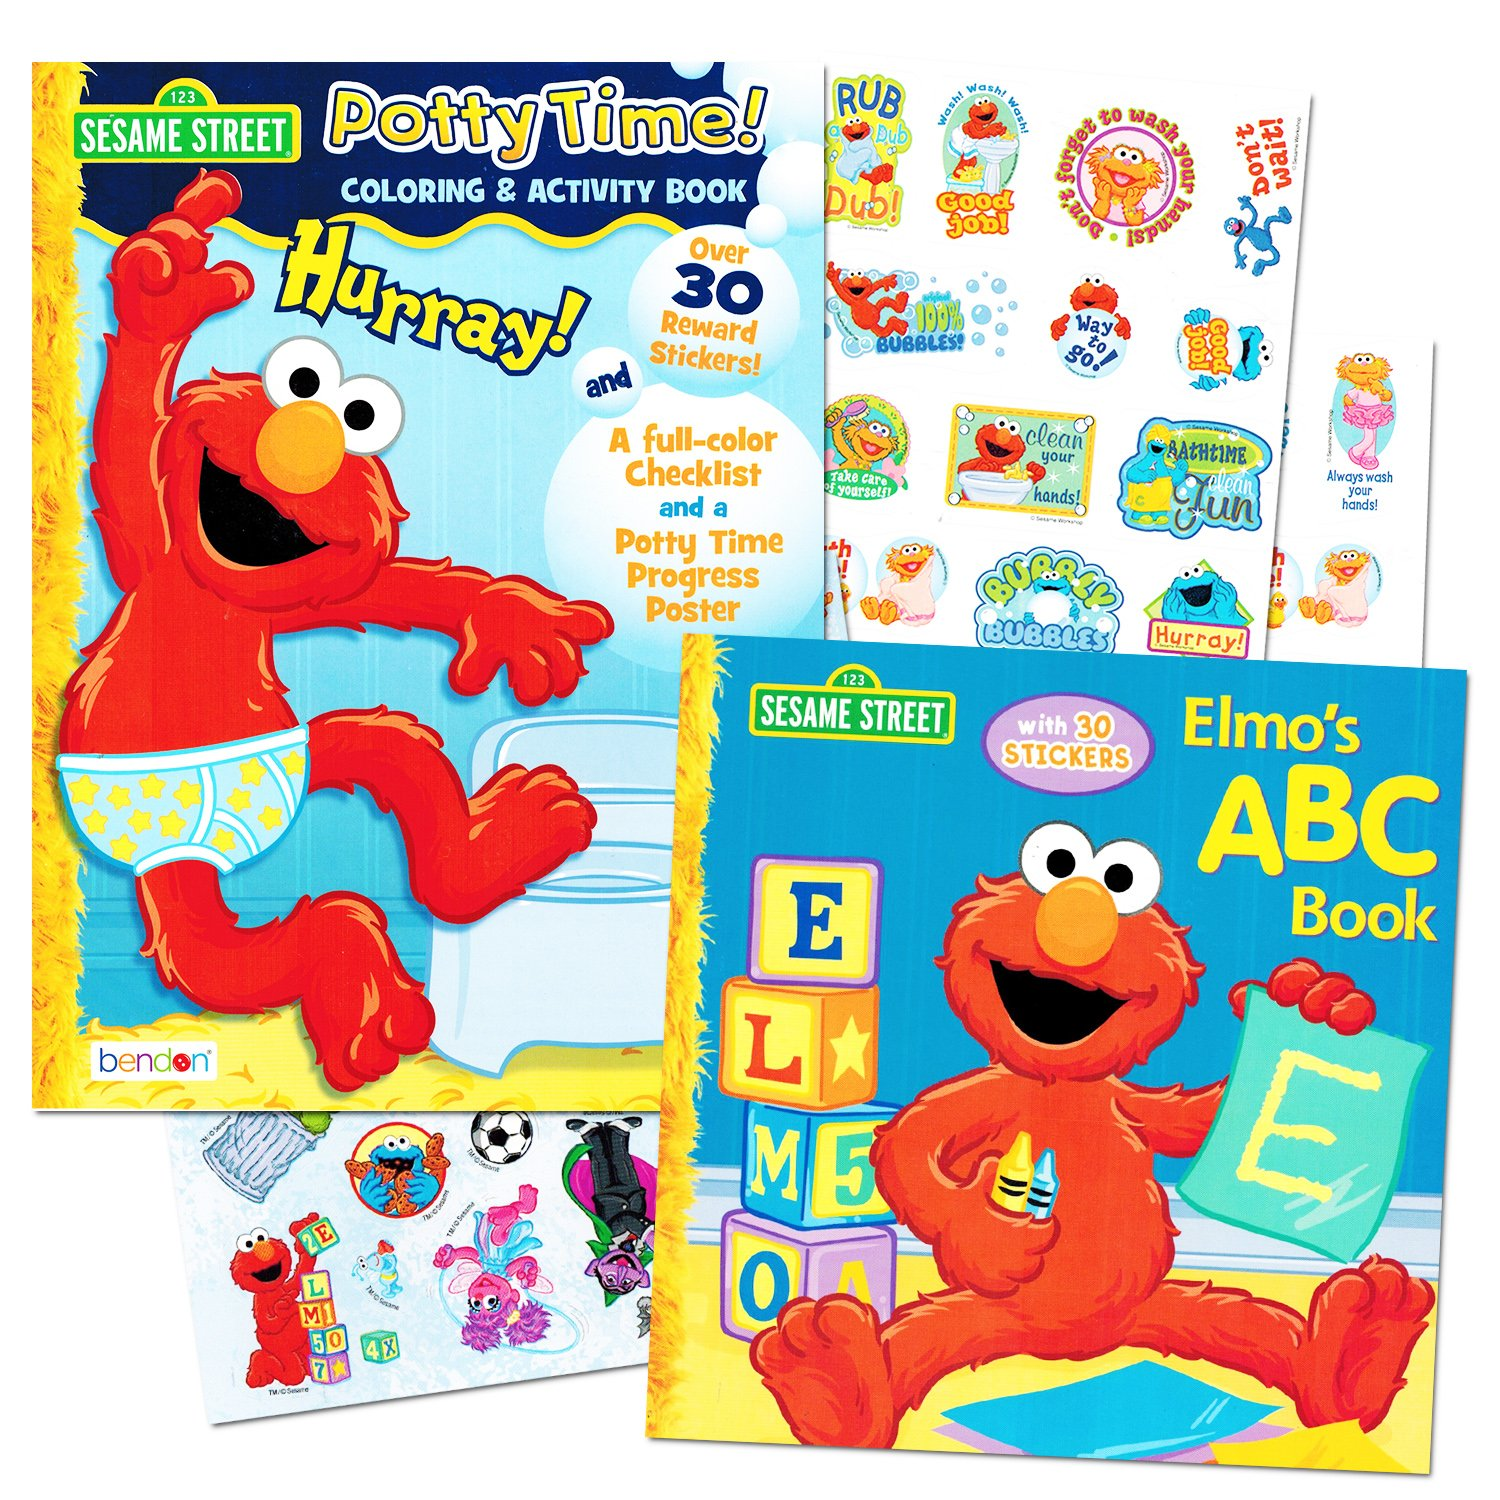 Sesame Street Elmo Potty Training Book Set For Toddlers -- Includes Progress Chart, Poster, Reward Stickers and Bonus Elmo ABC Book